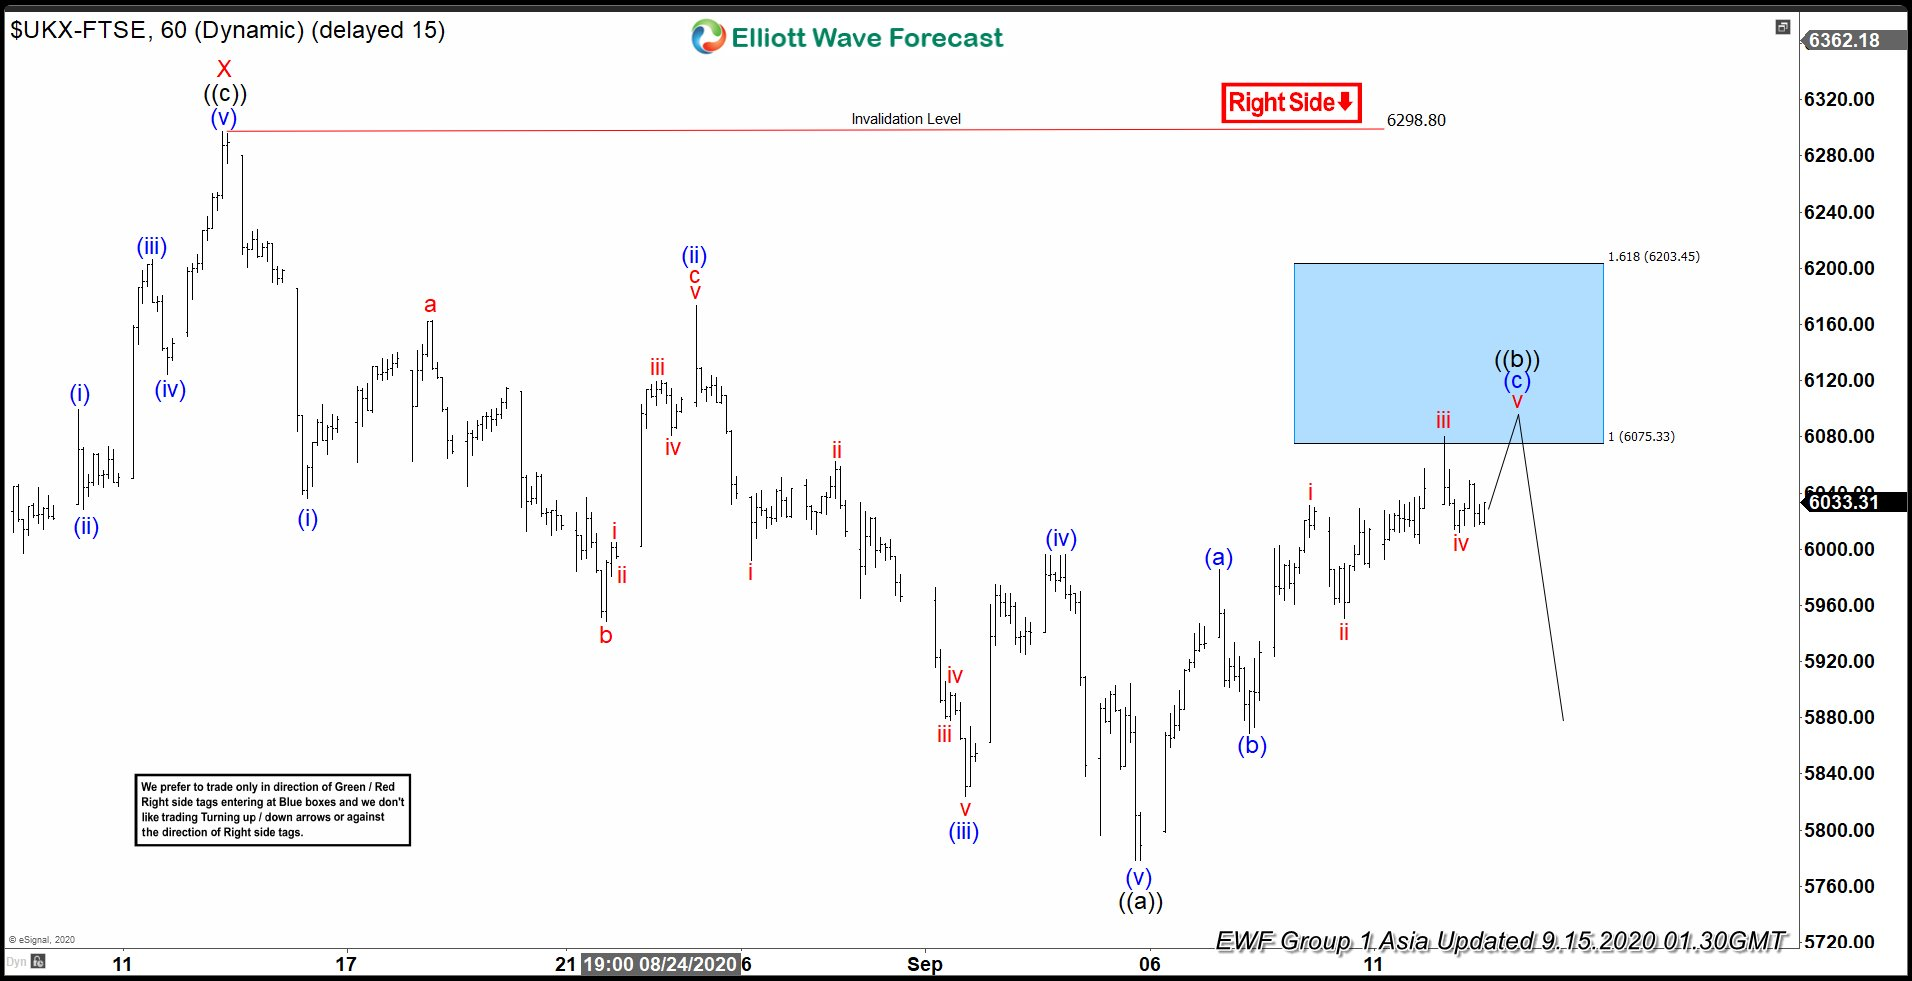 Elliott Wave View: FTSE Rally Likely to Find Sellers